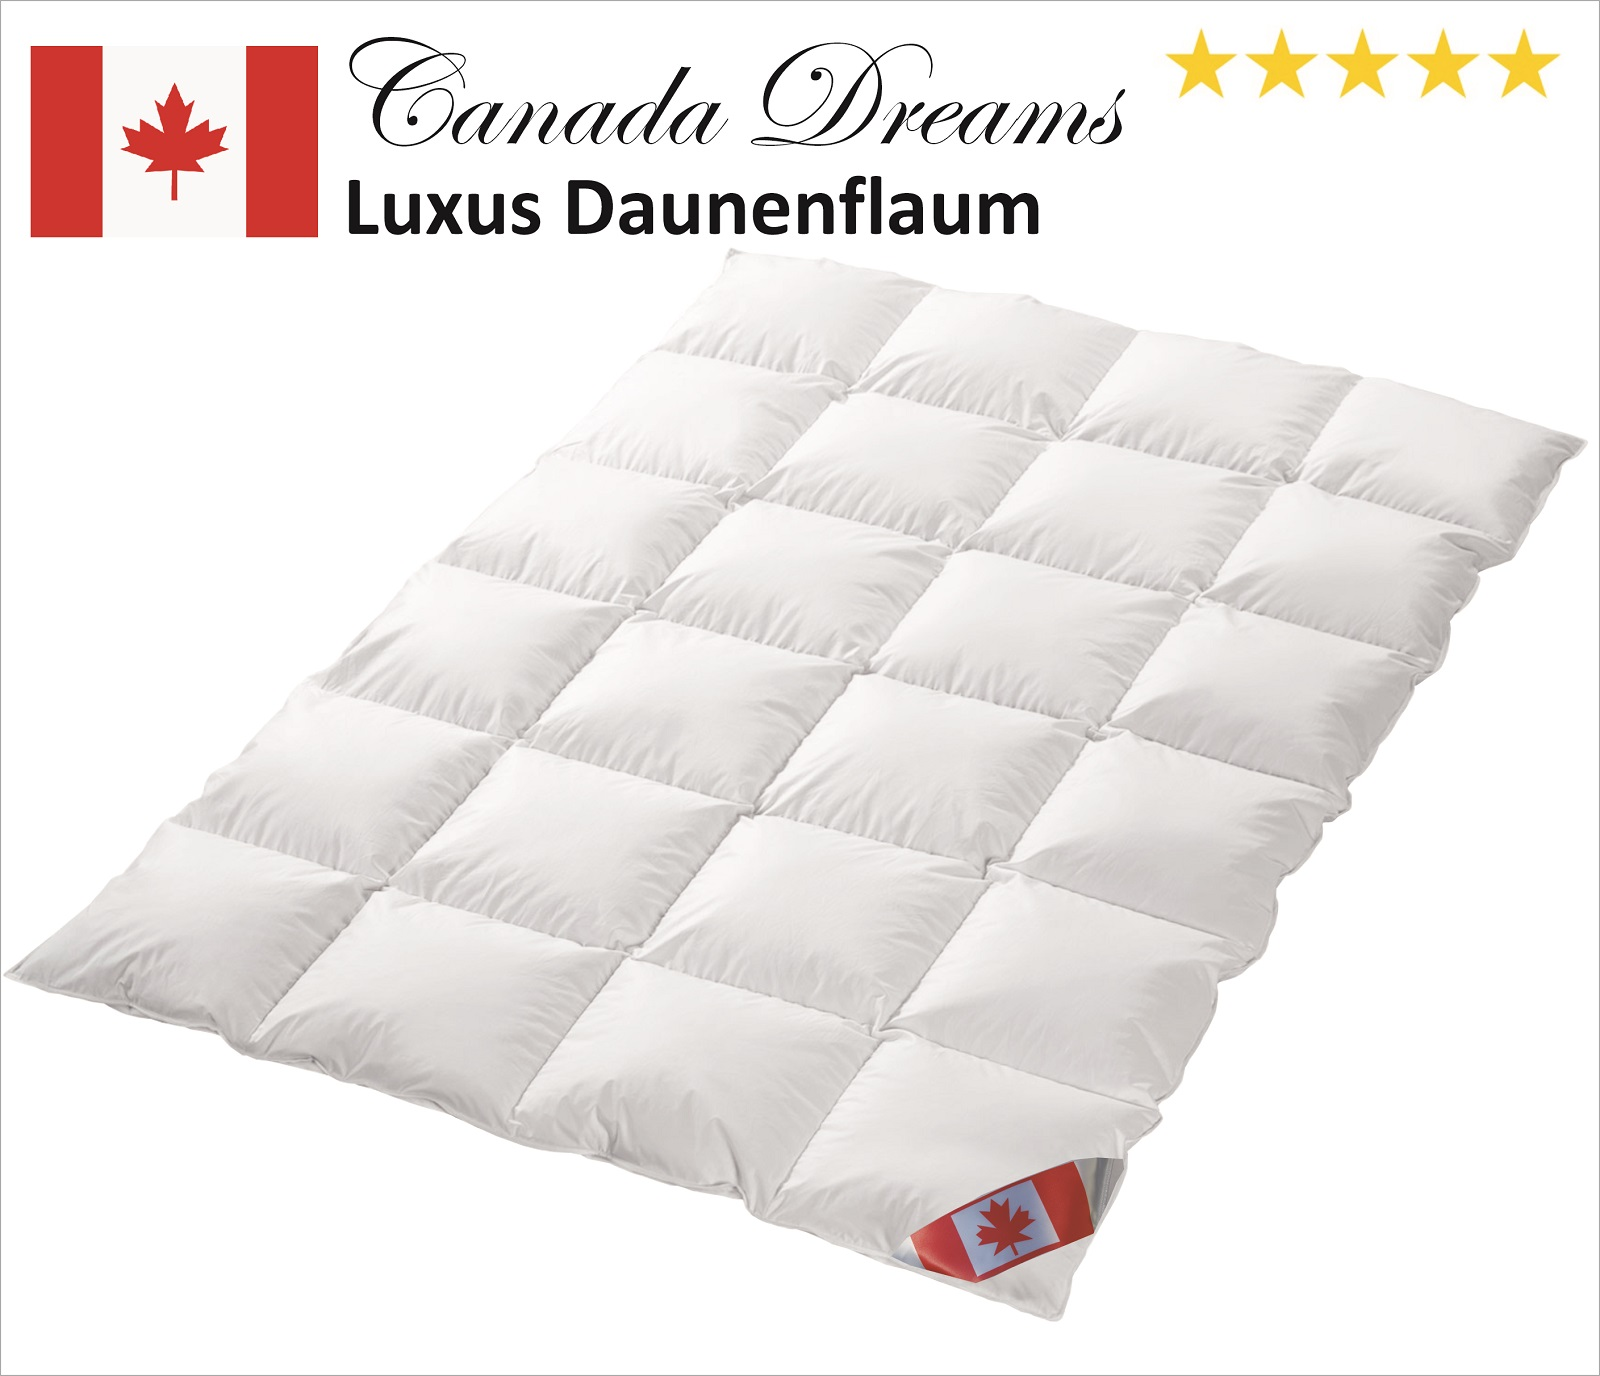 Canada Dreams Luxus Winter Daunendecke PLUS Wärmegrad 4 200x200